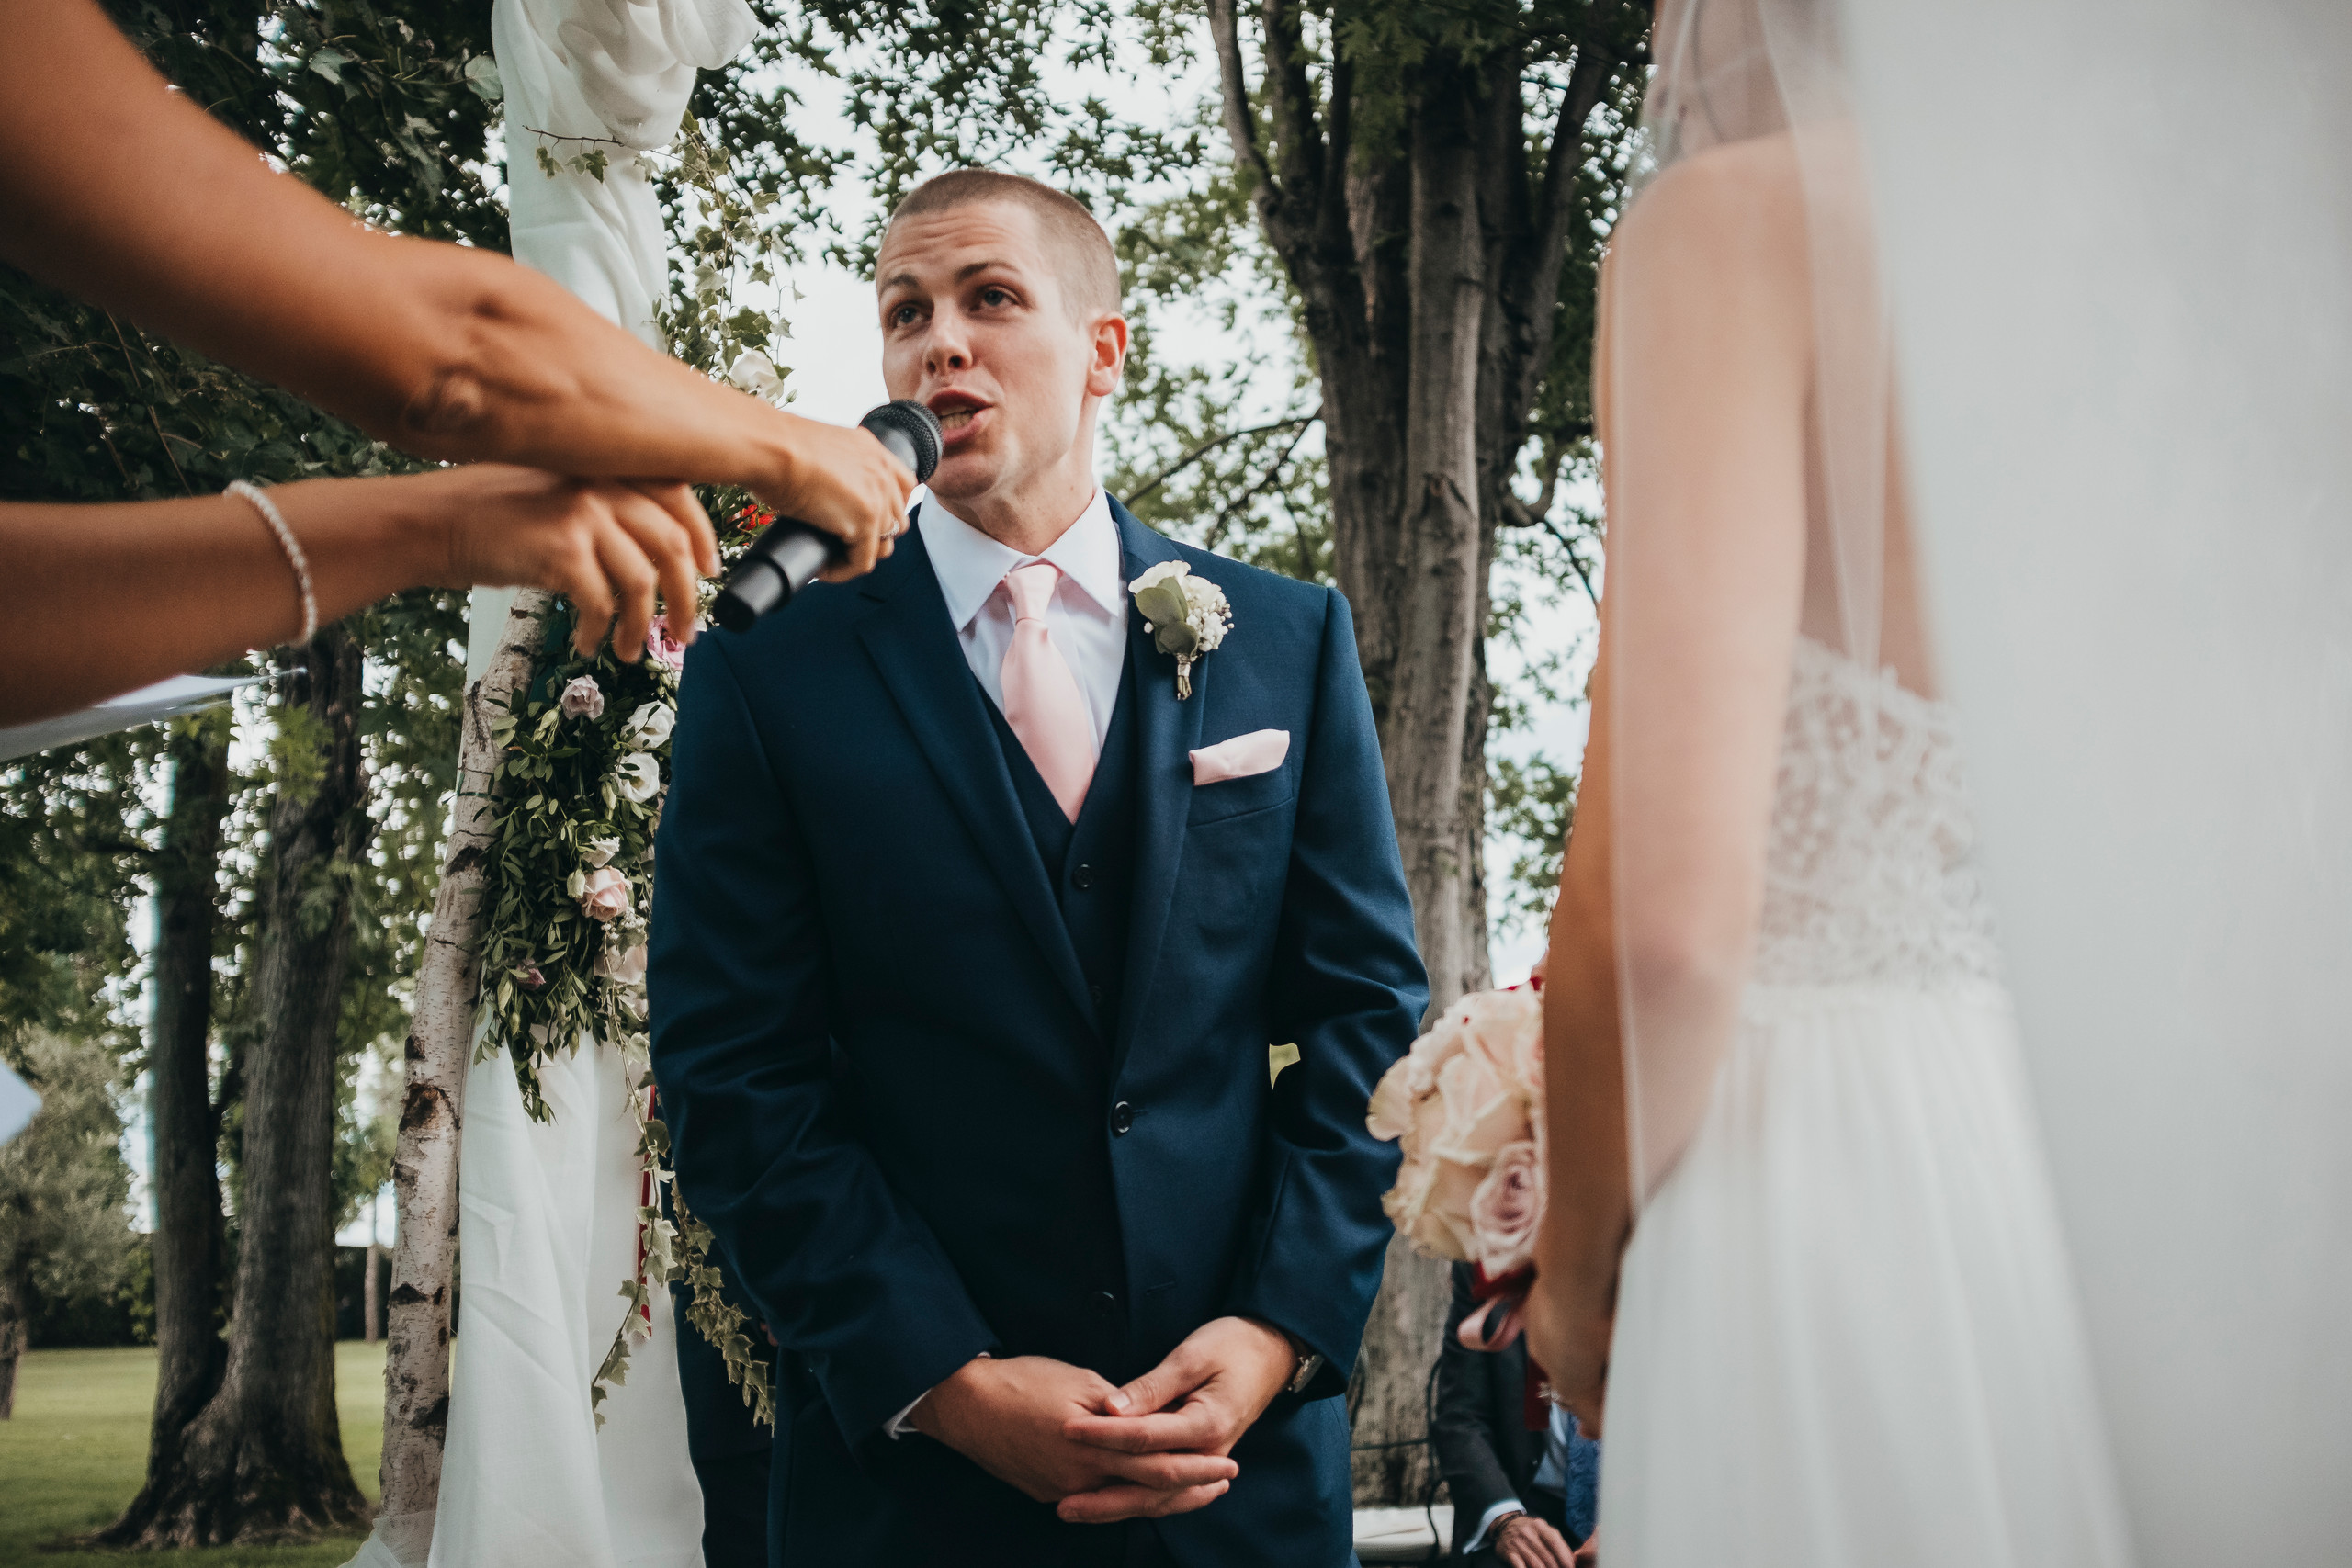 American wedding in Italy